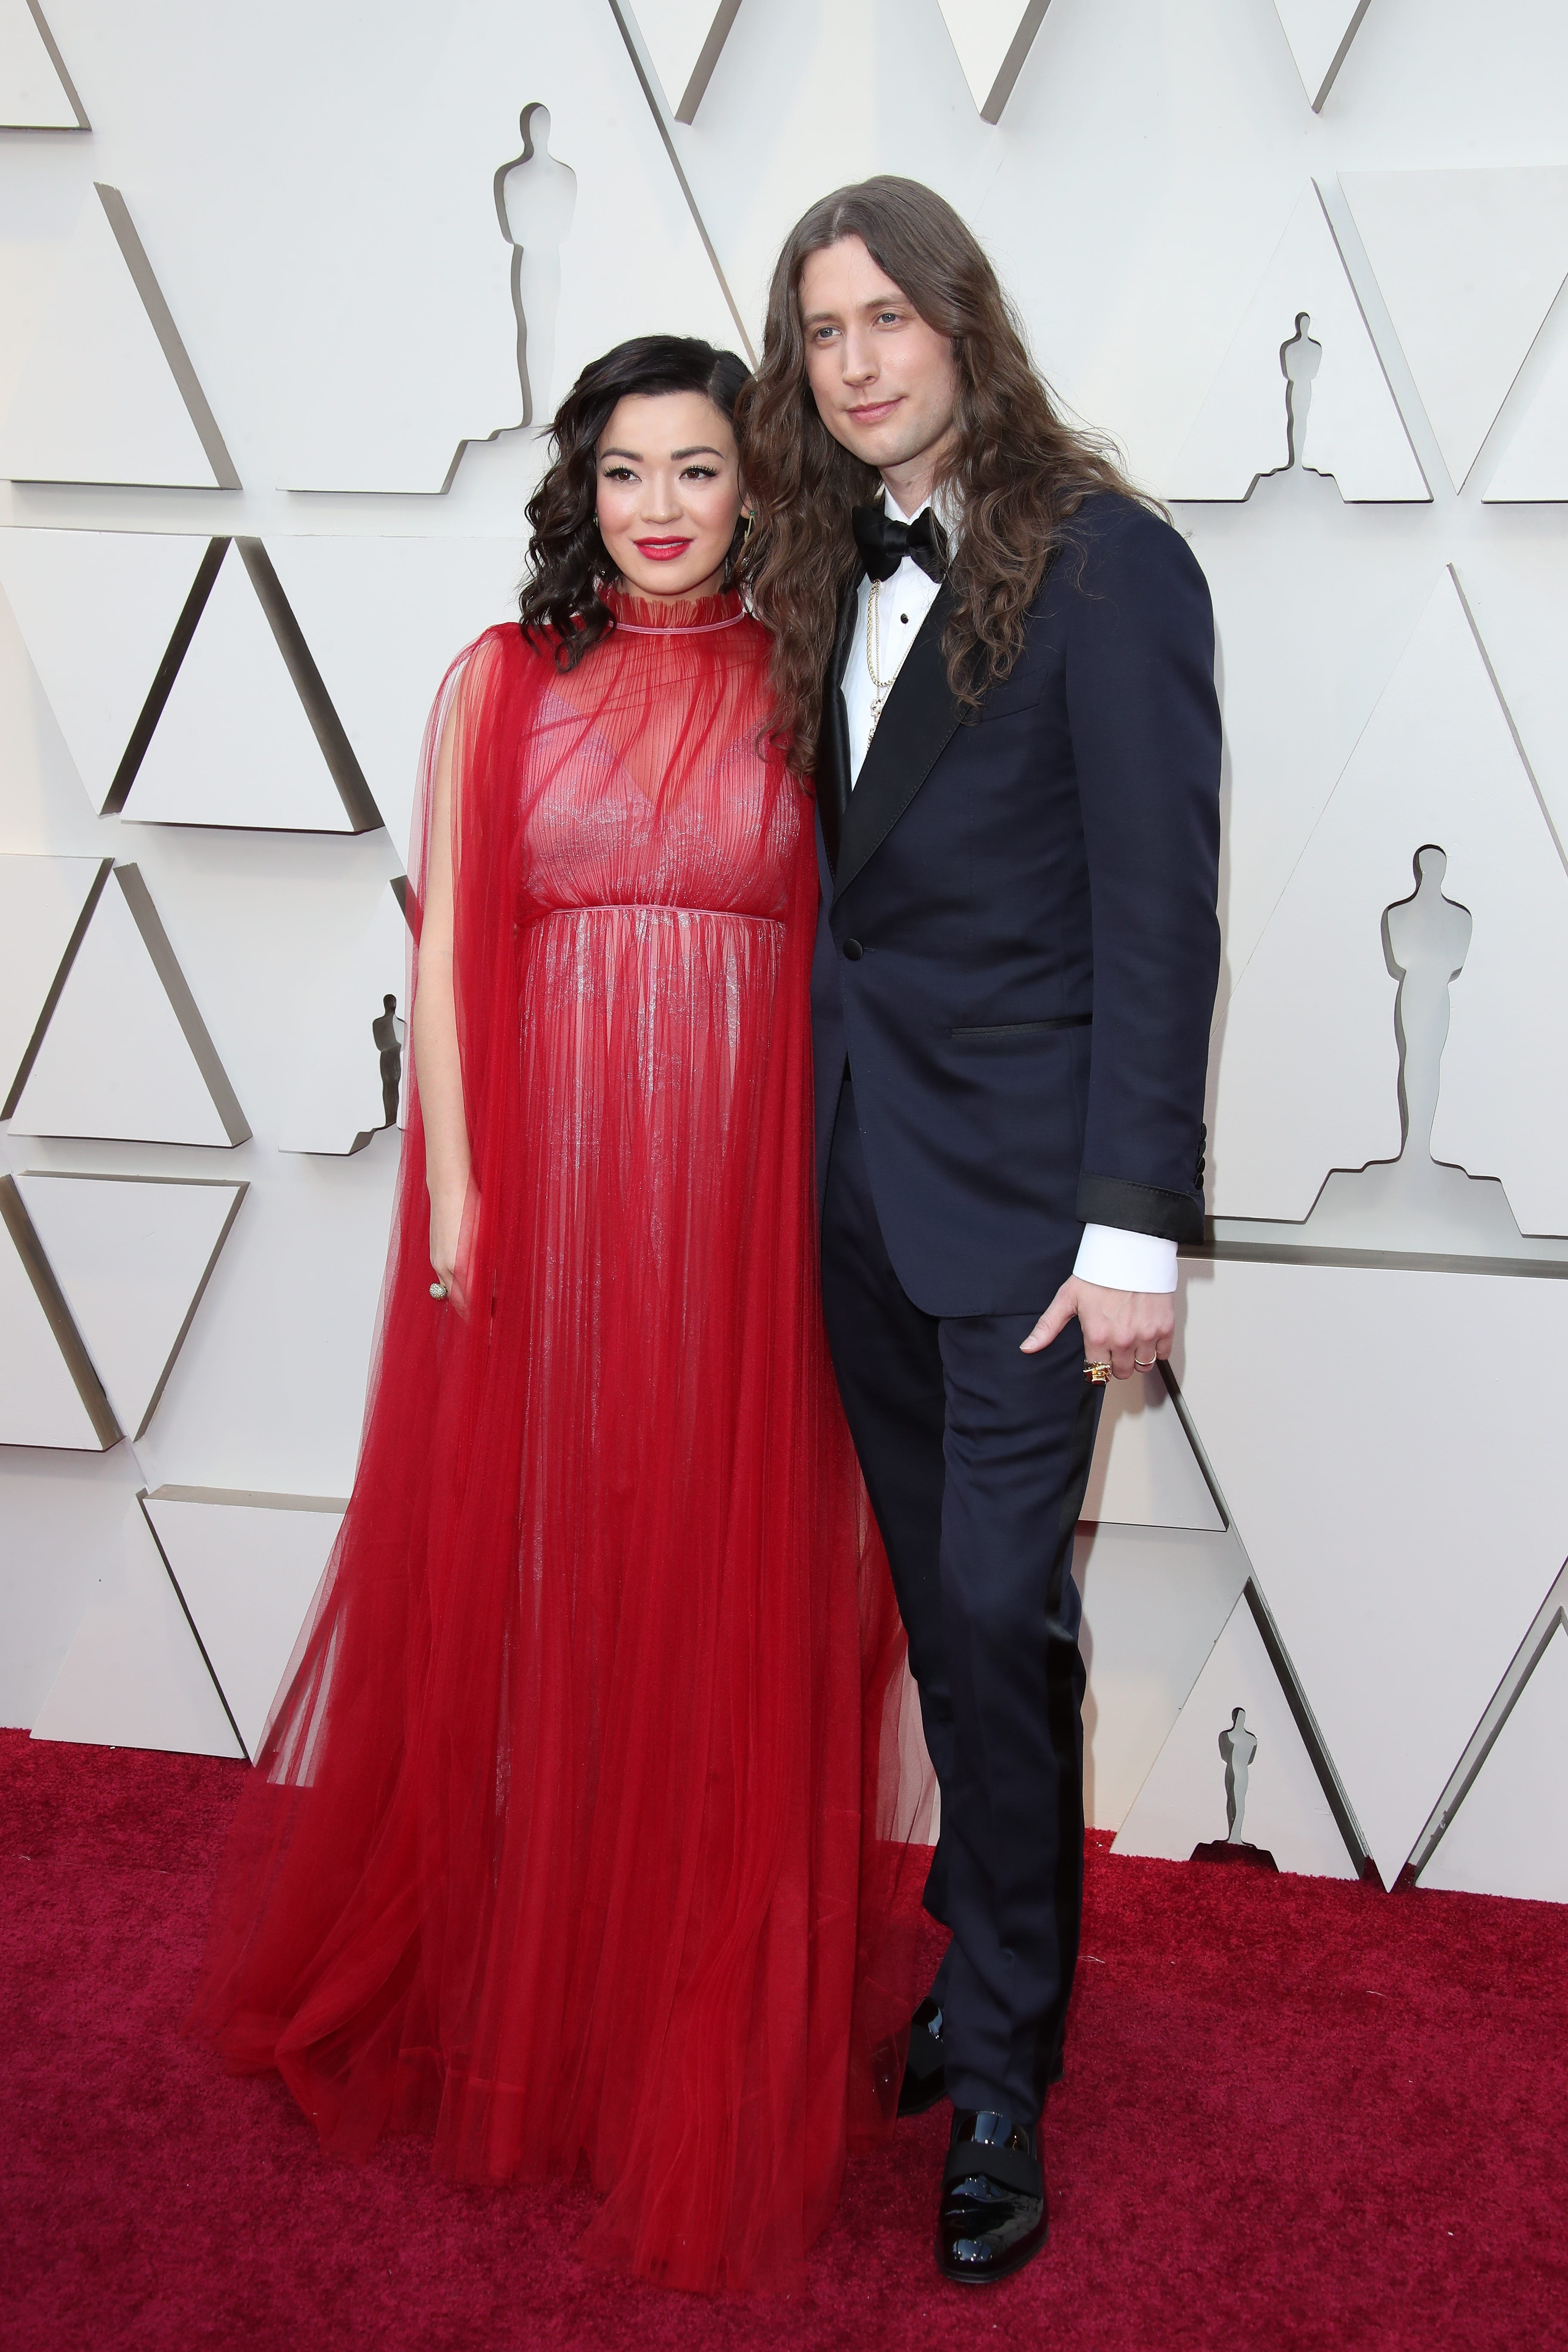 February 24, 2019; Los Angeles, CA, USA; Serena McKinney, left and Ludwig Goransson arrives at the 91st Academy Awards at the Dolby Theatre. Mandatory Credit: Dan MacMedan-USA TODAY NETWORK (Via OlyDrop)